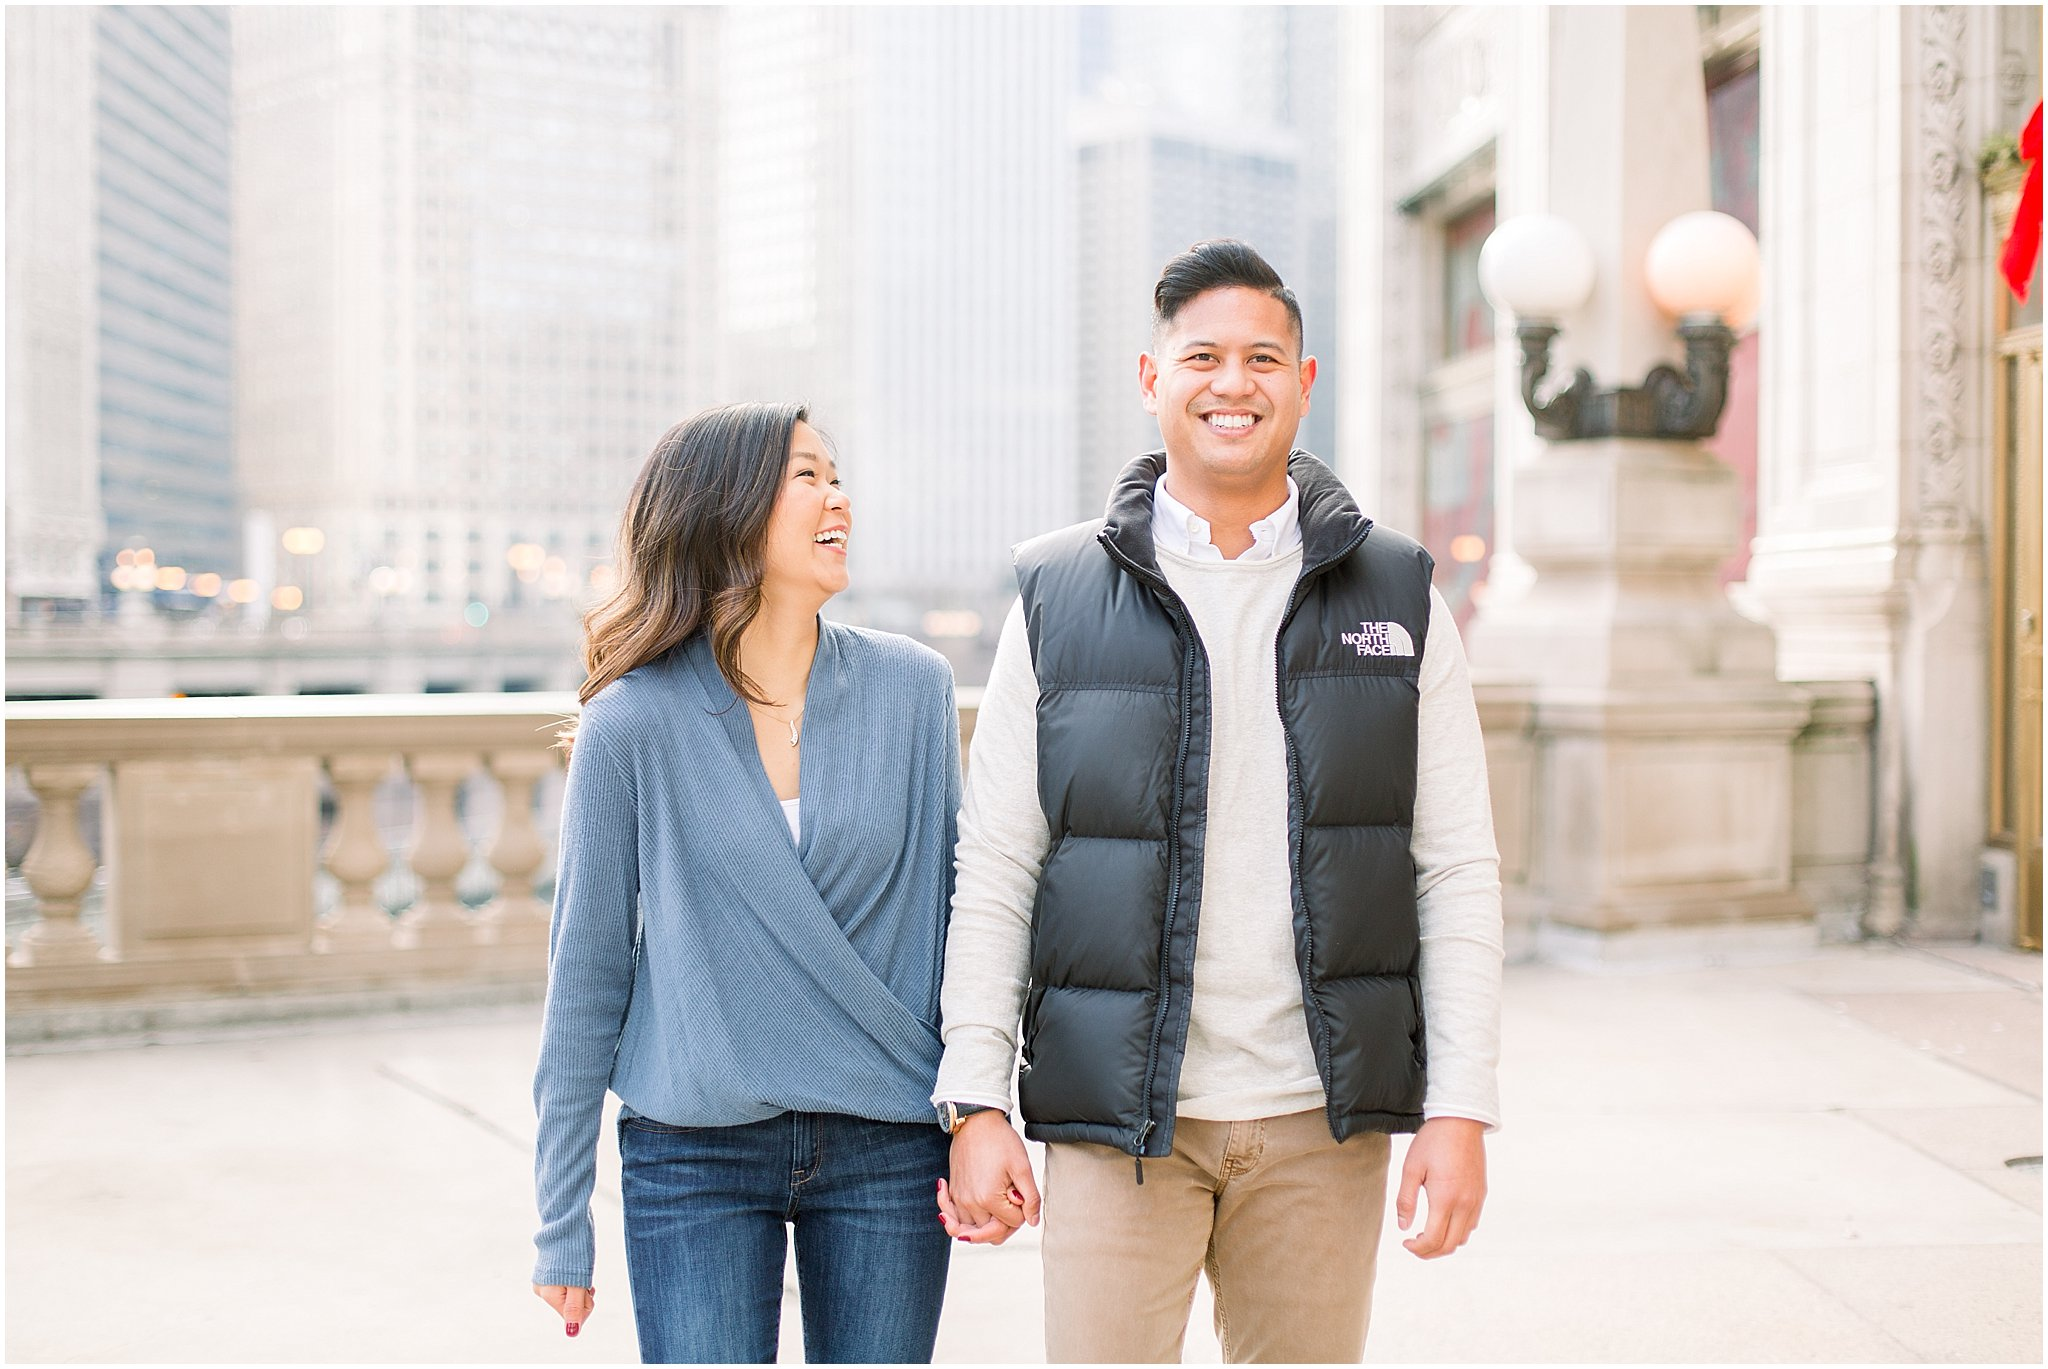 winter-downtown-engagement-session_0010.jpg